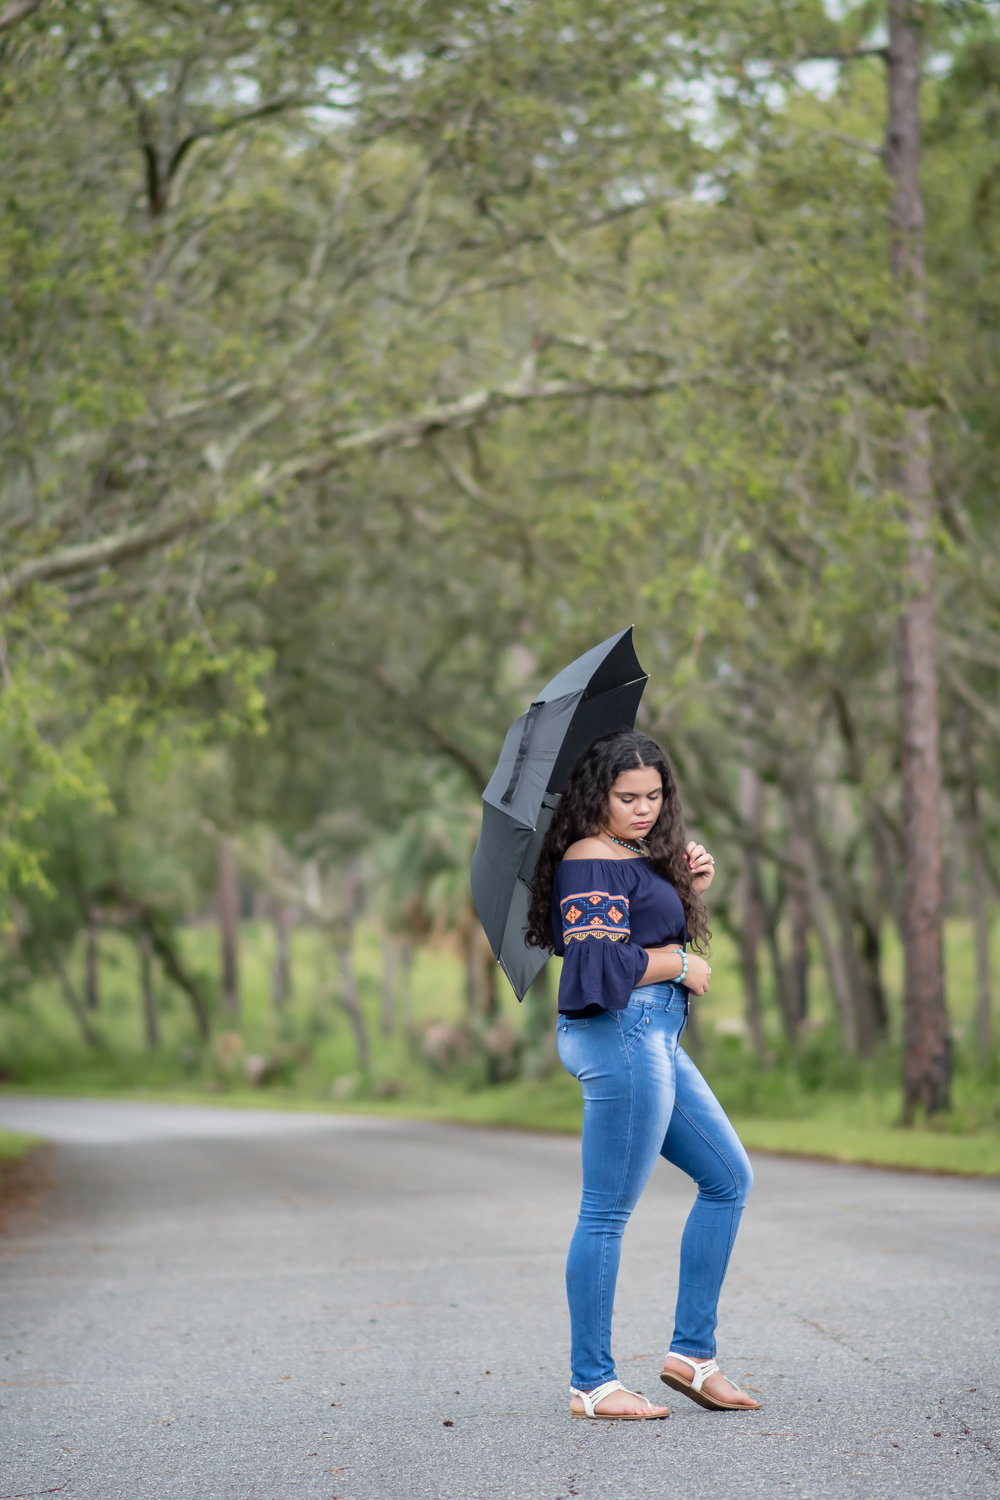 high-school-senior-photos-orlando-photographer-yanitza-ninett-66.jpg